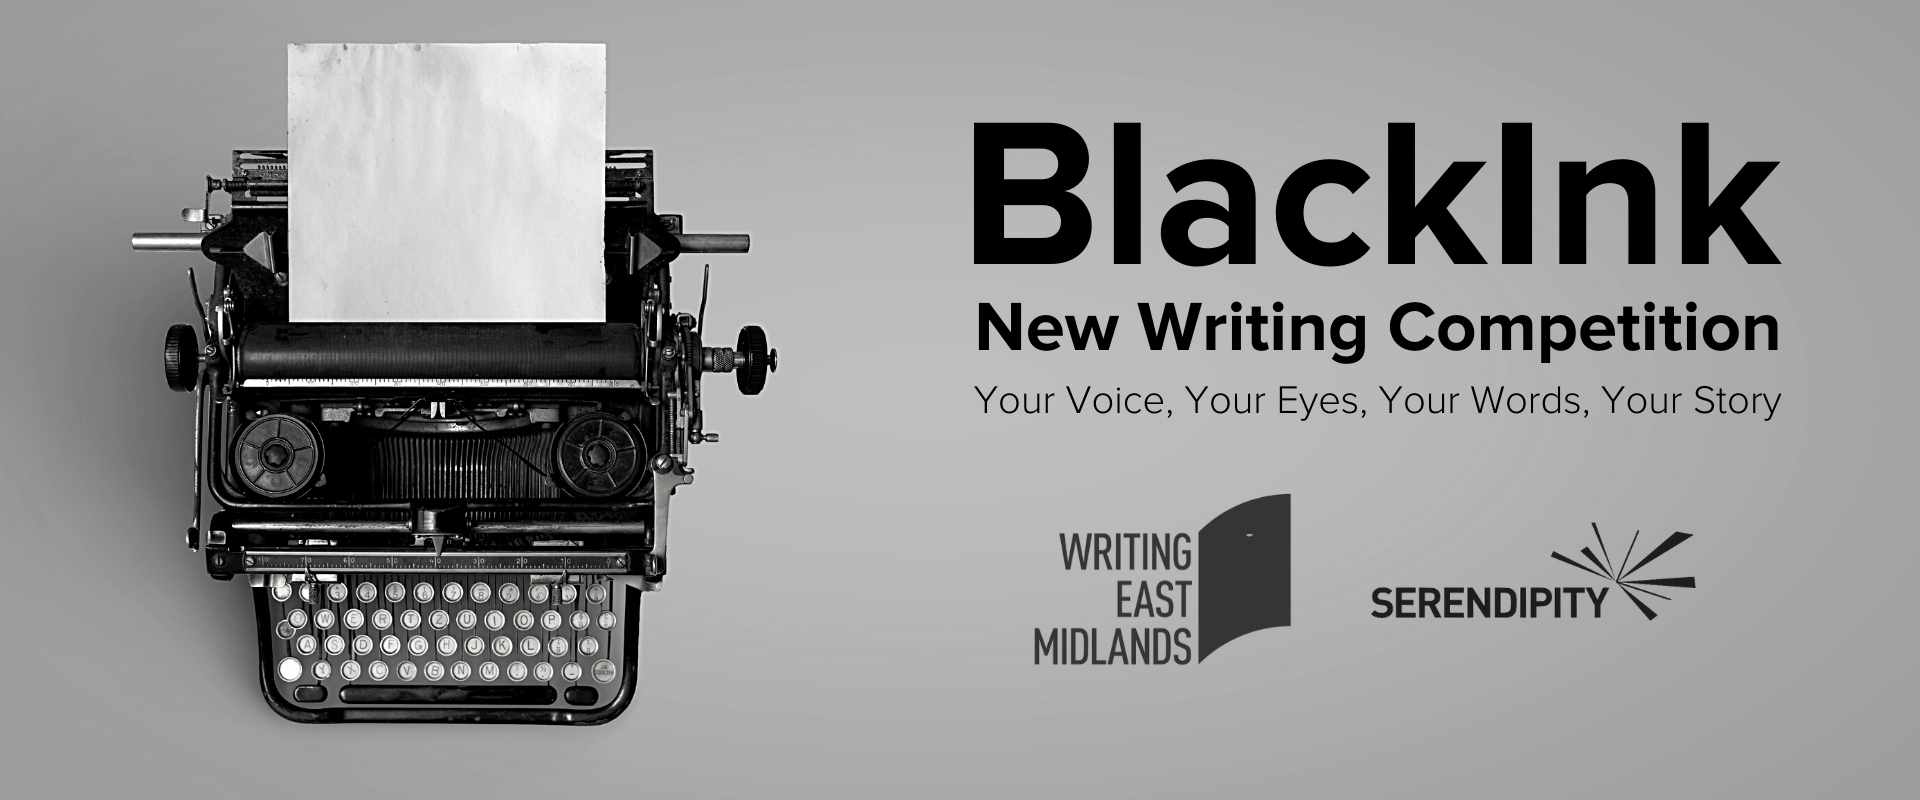 BlackInk New Writing Competition 2020: Your Voice, Your Eyes, Your Words, Your Story — Page Banner